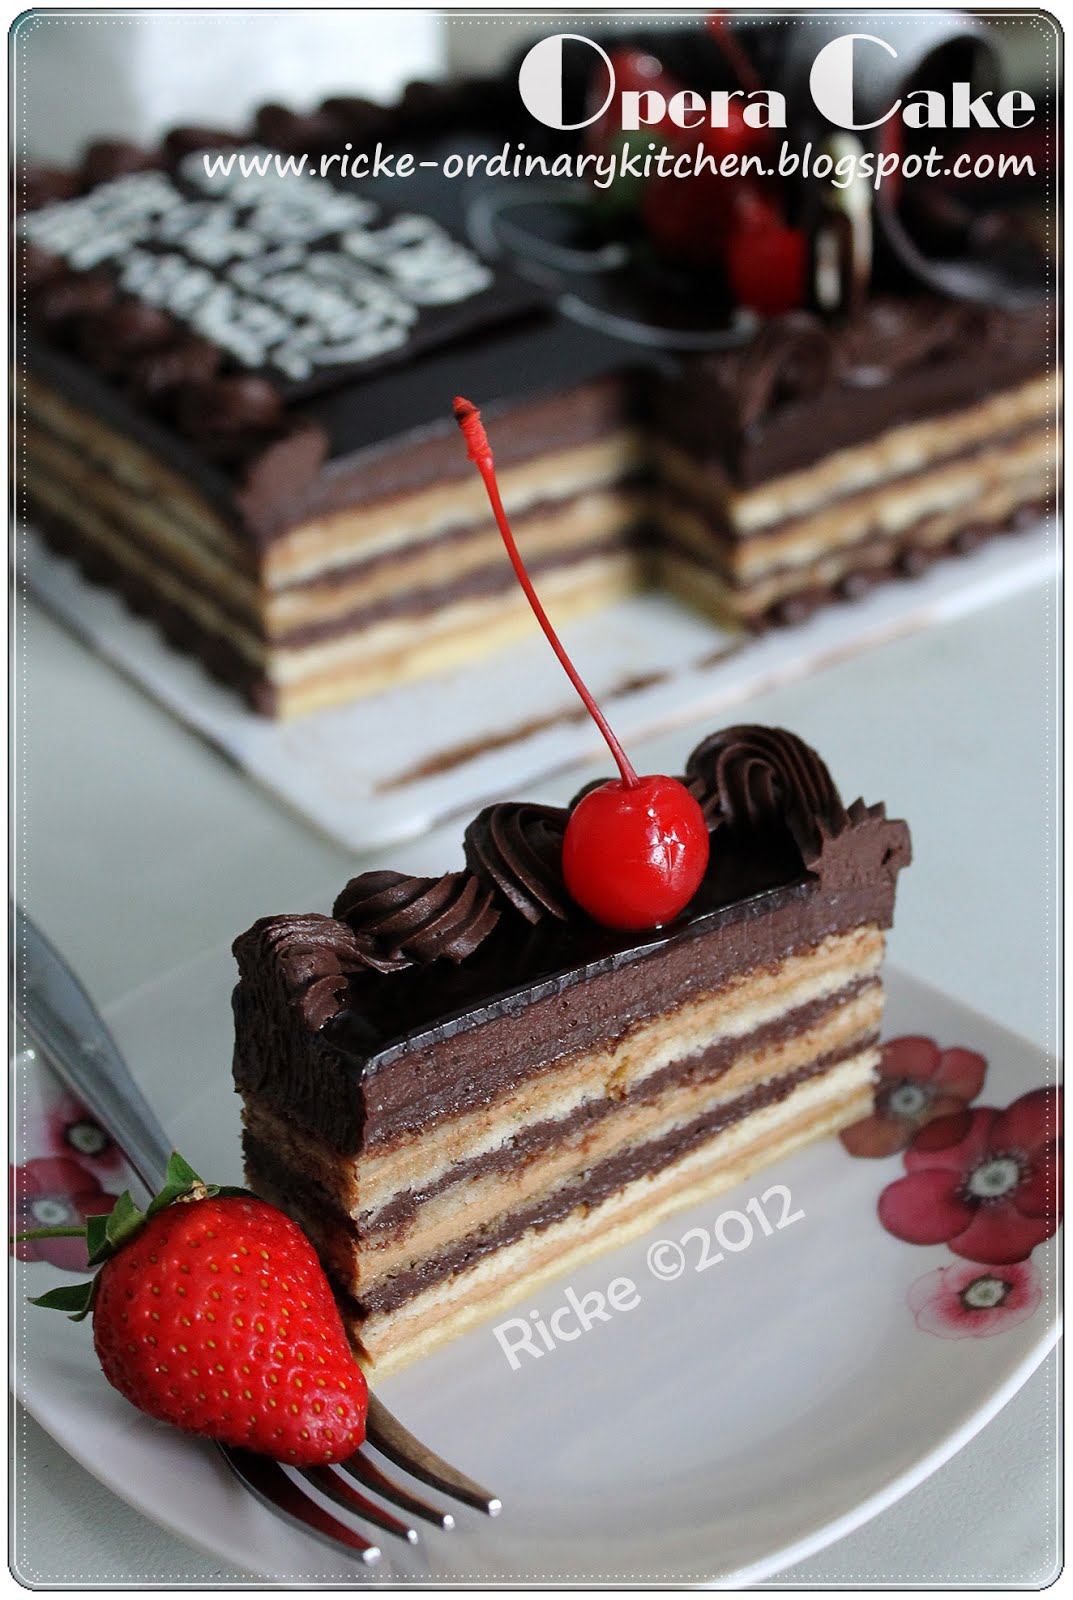 Just My Ordinary Kitchen A VERY LATE POST OPERA CAKE ON ABIS